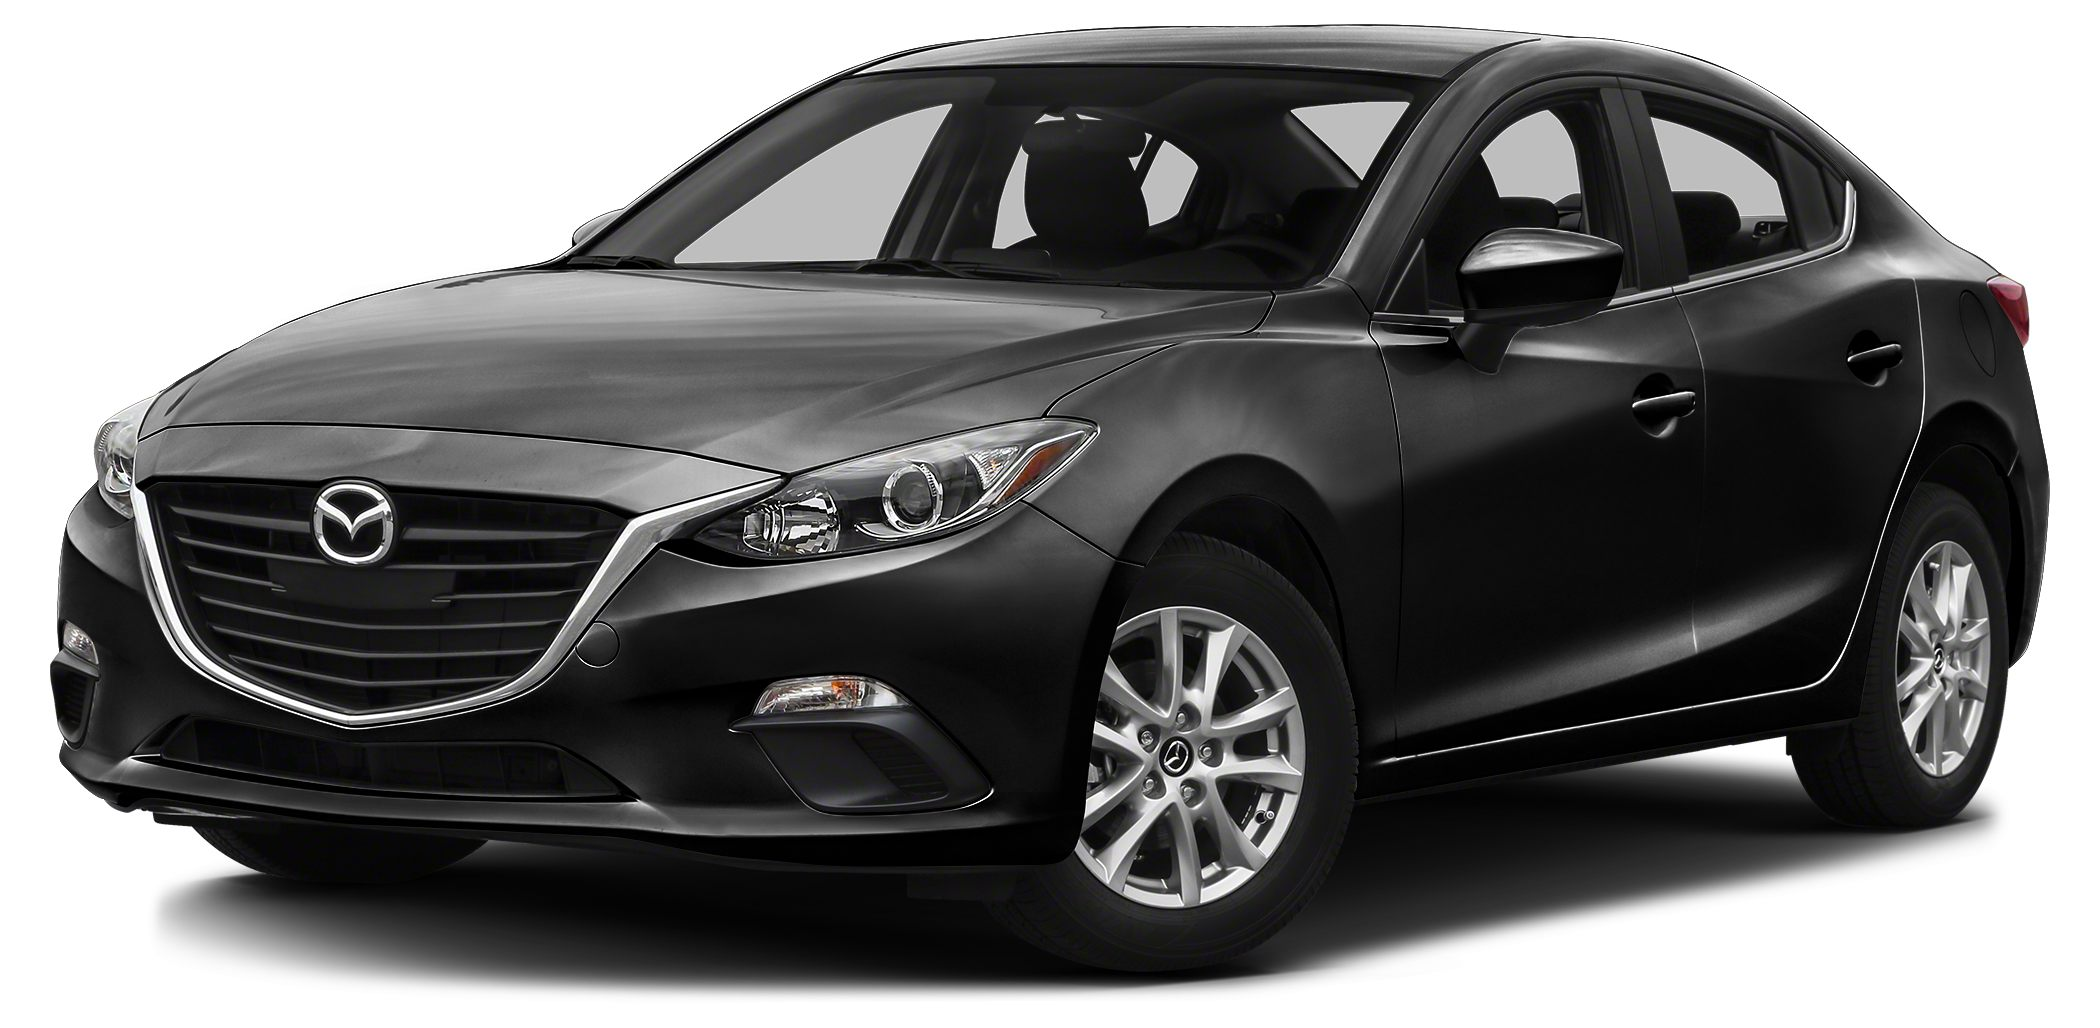 2014 Mazda MAZDA3 i Touring Touring Edition - Sunroof - Jet Black Mica on Black interior with Blue